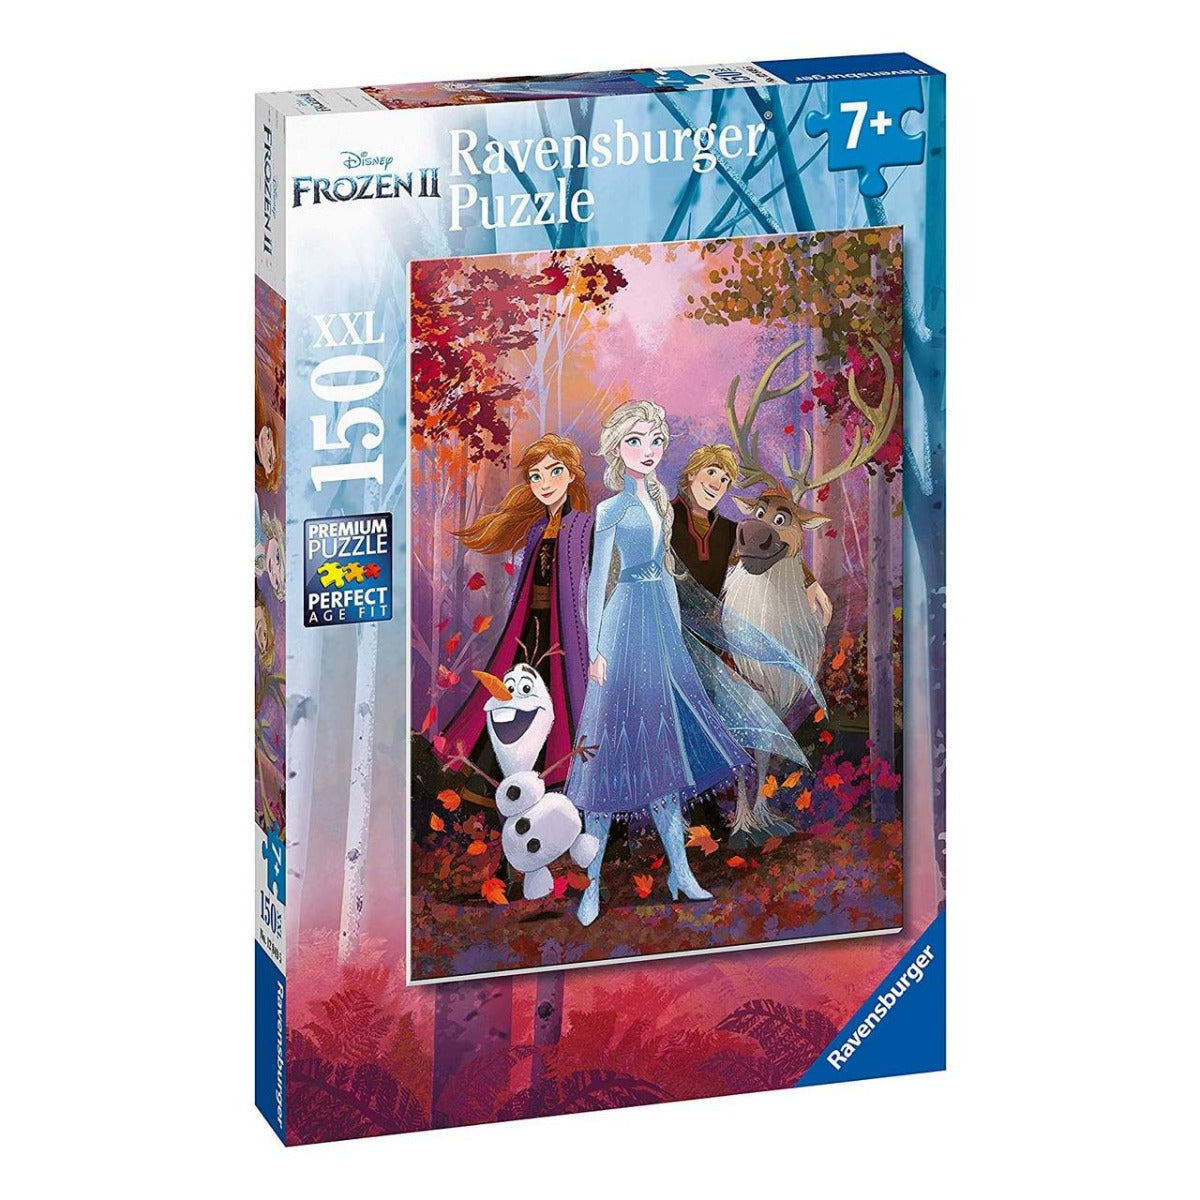 Ravensburger Disney Frozen 2 Puzzle - A Fantastic Adventure